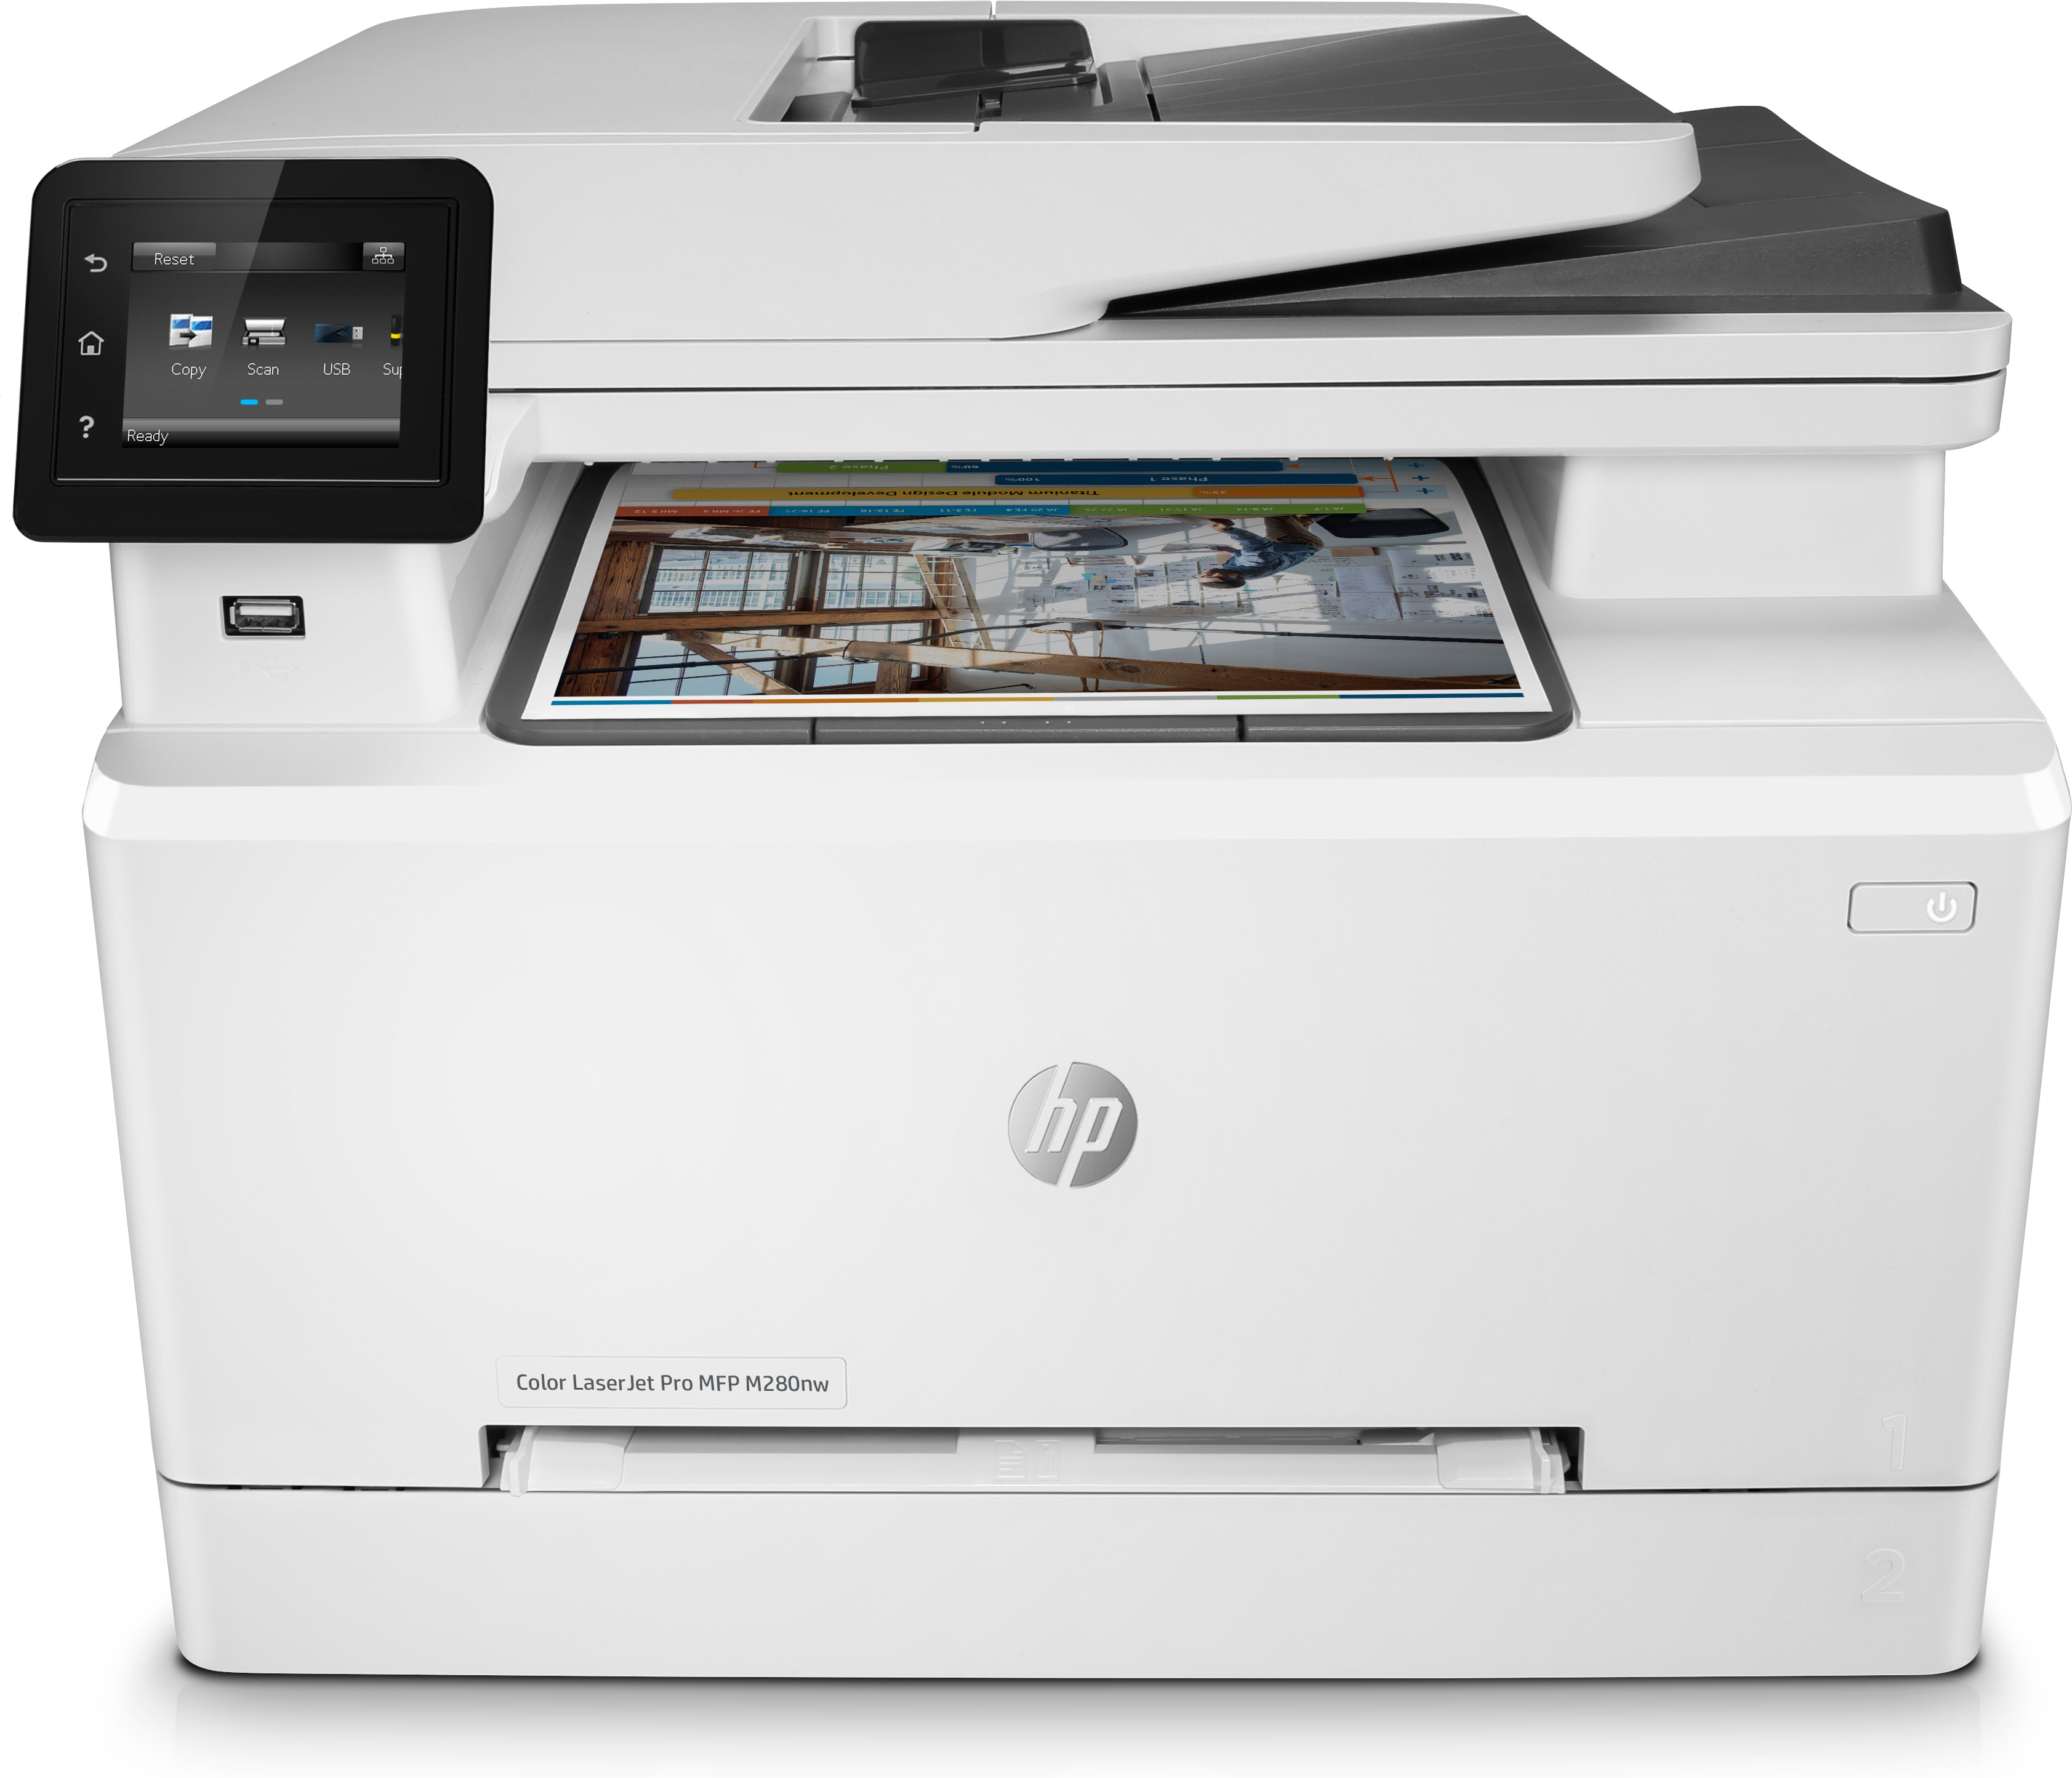 HP Color LaserJet Pro MFP M280nw, Farblaser, MFP, A4